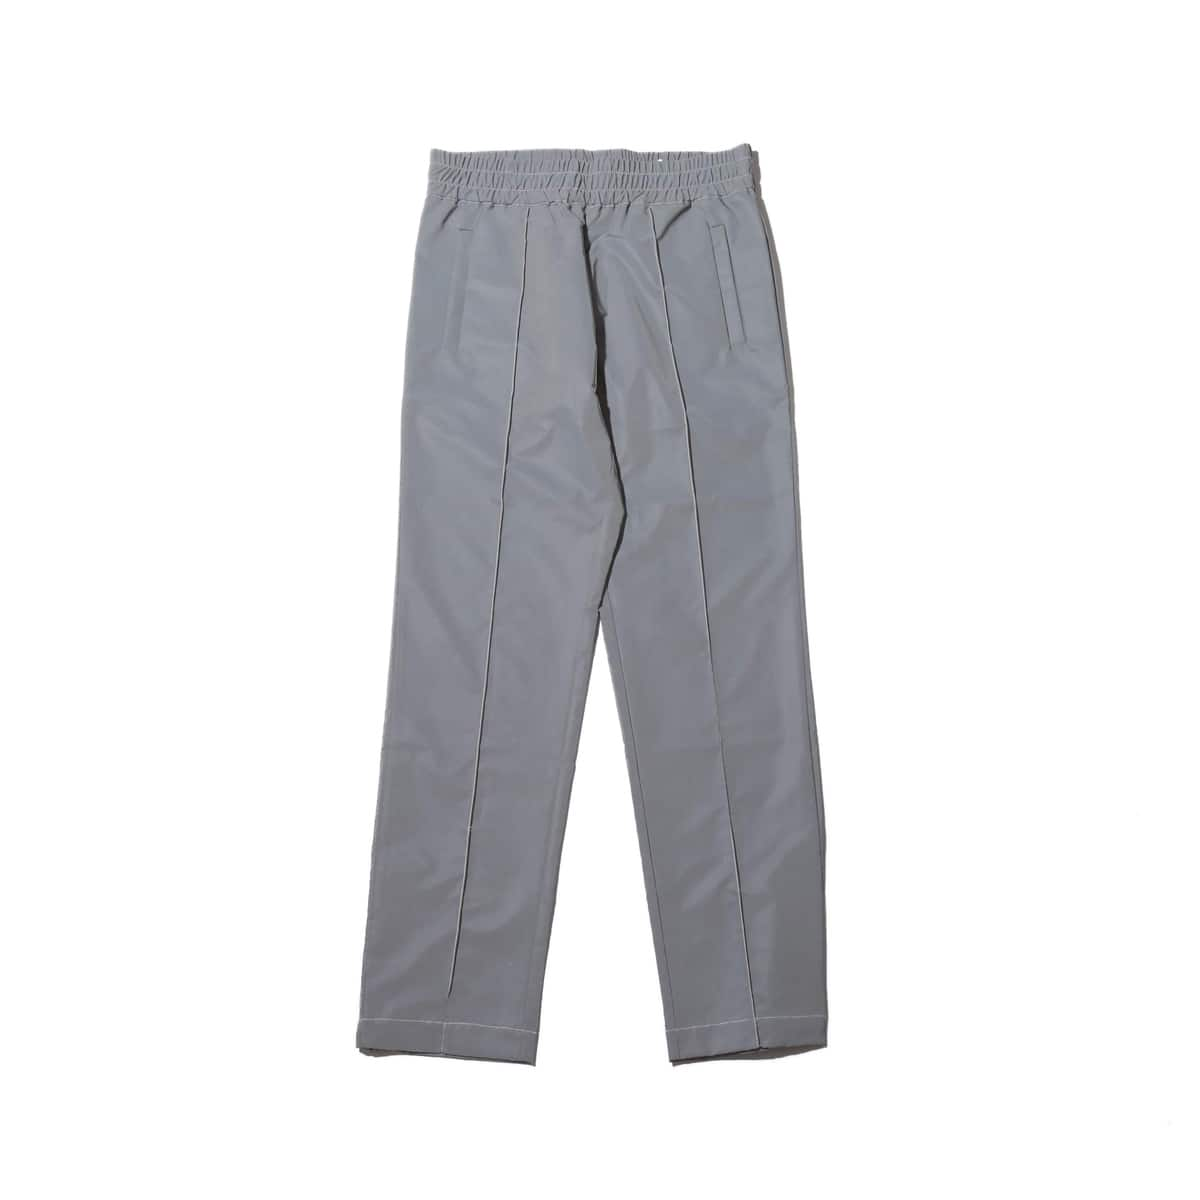 DIADORA REFLECTIVE PANT DIADORA SILVER 19FA-I_photo_large